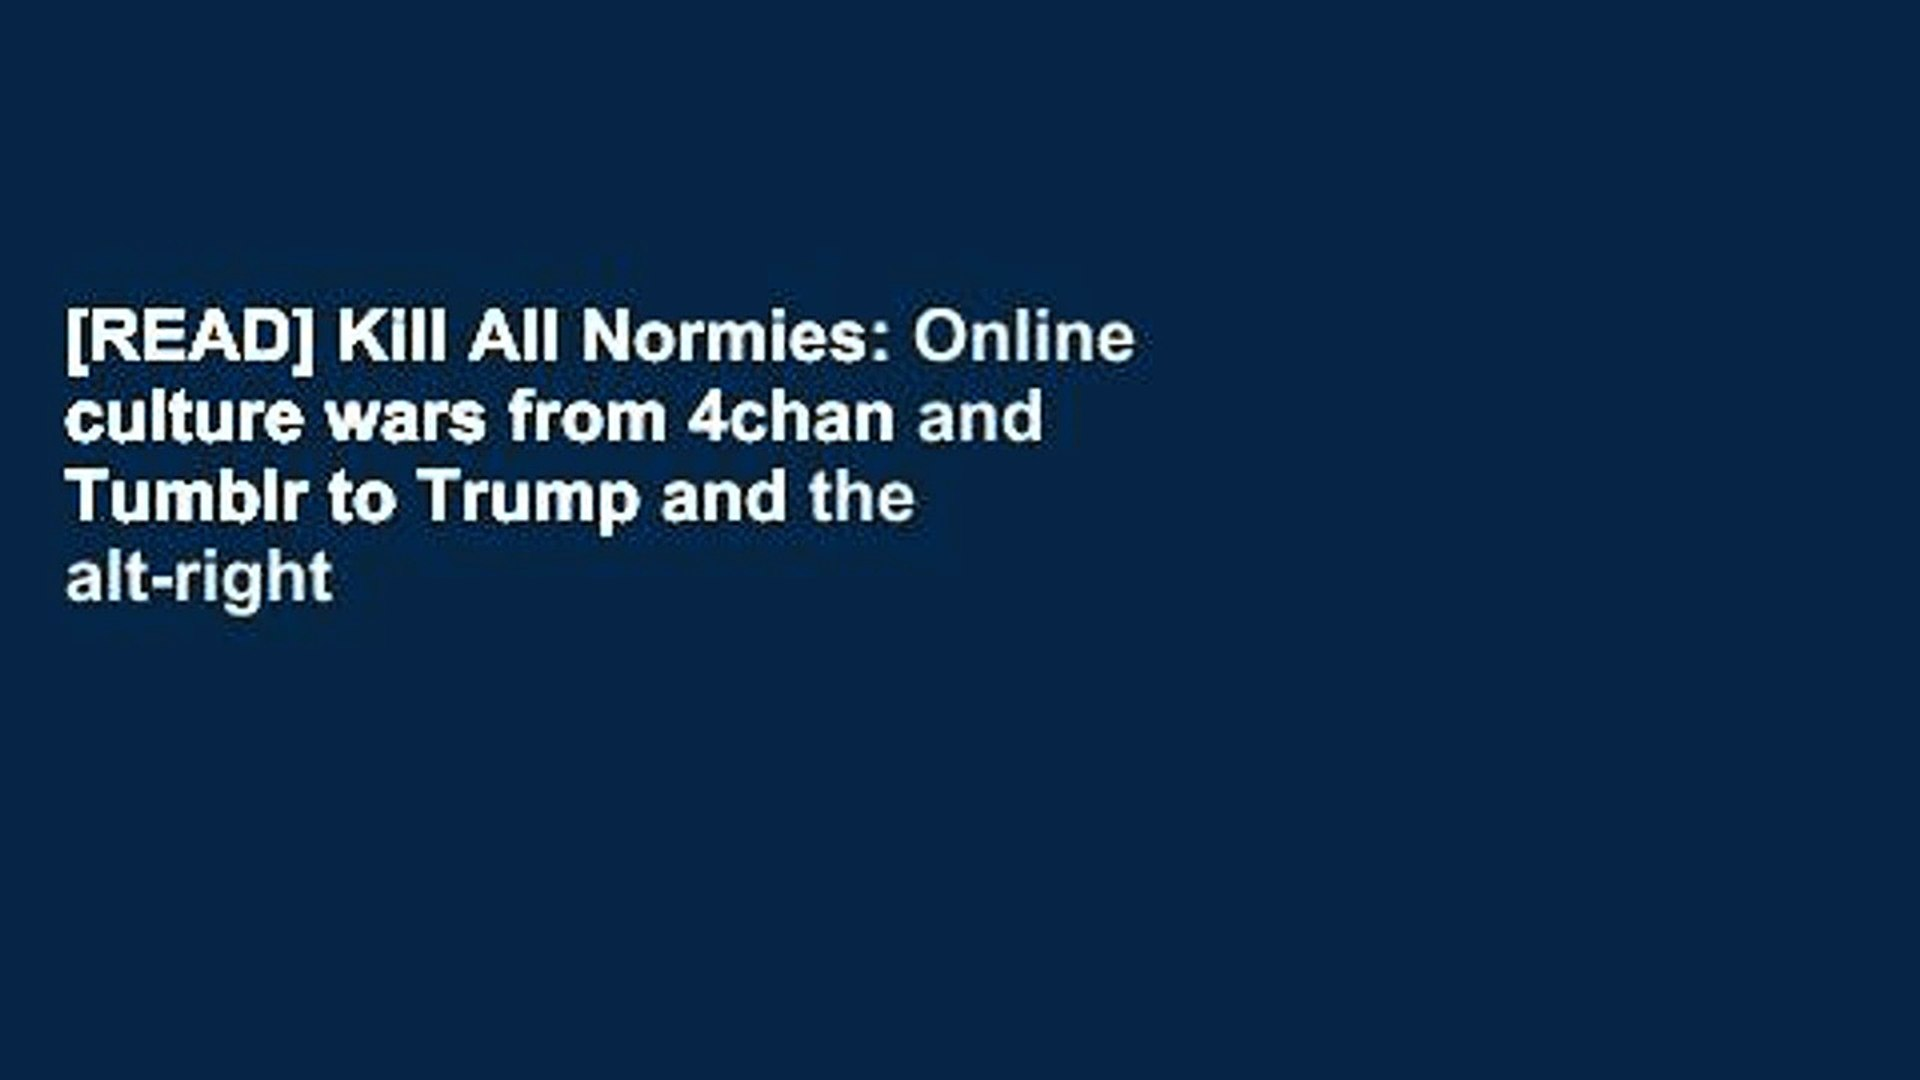 [READ] Kill All Normies: Online culture wars from 4chan and Tumblr to Trump and the alt-right